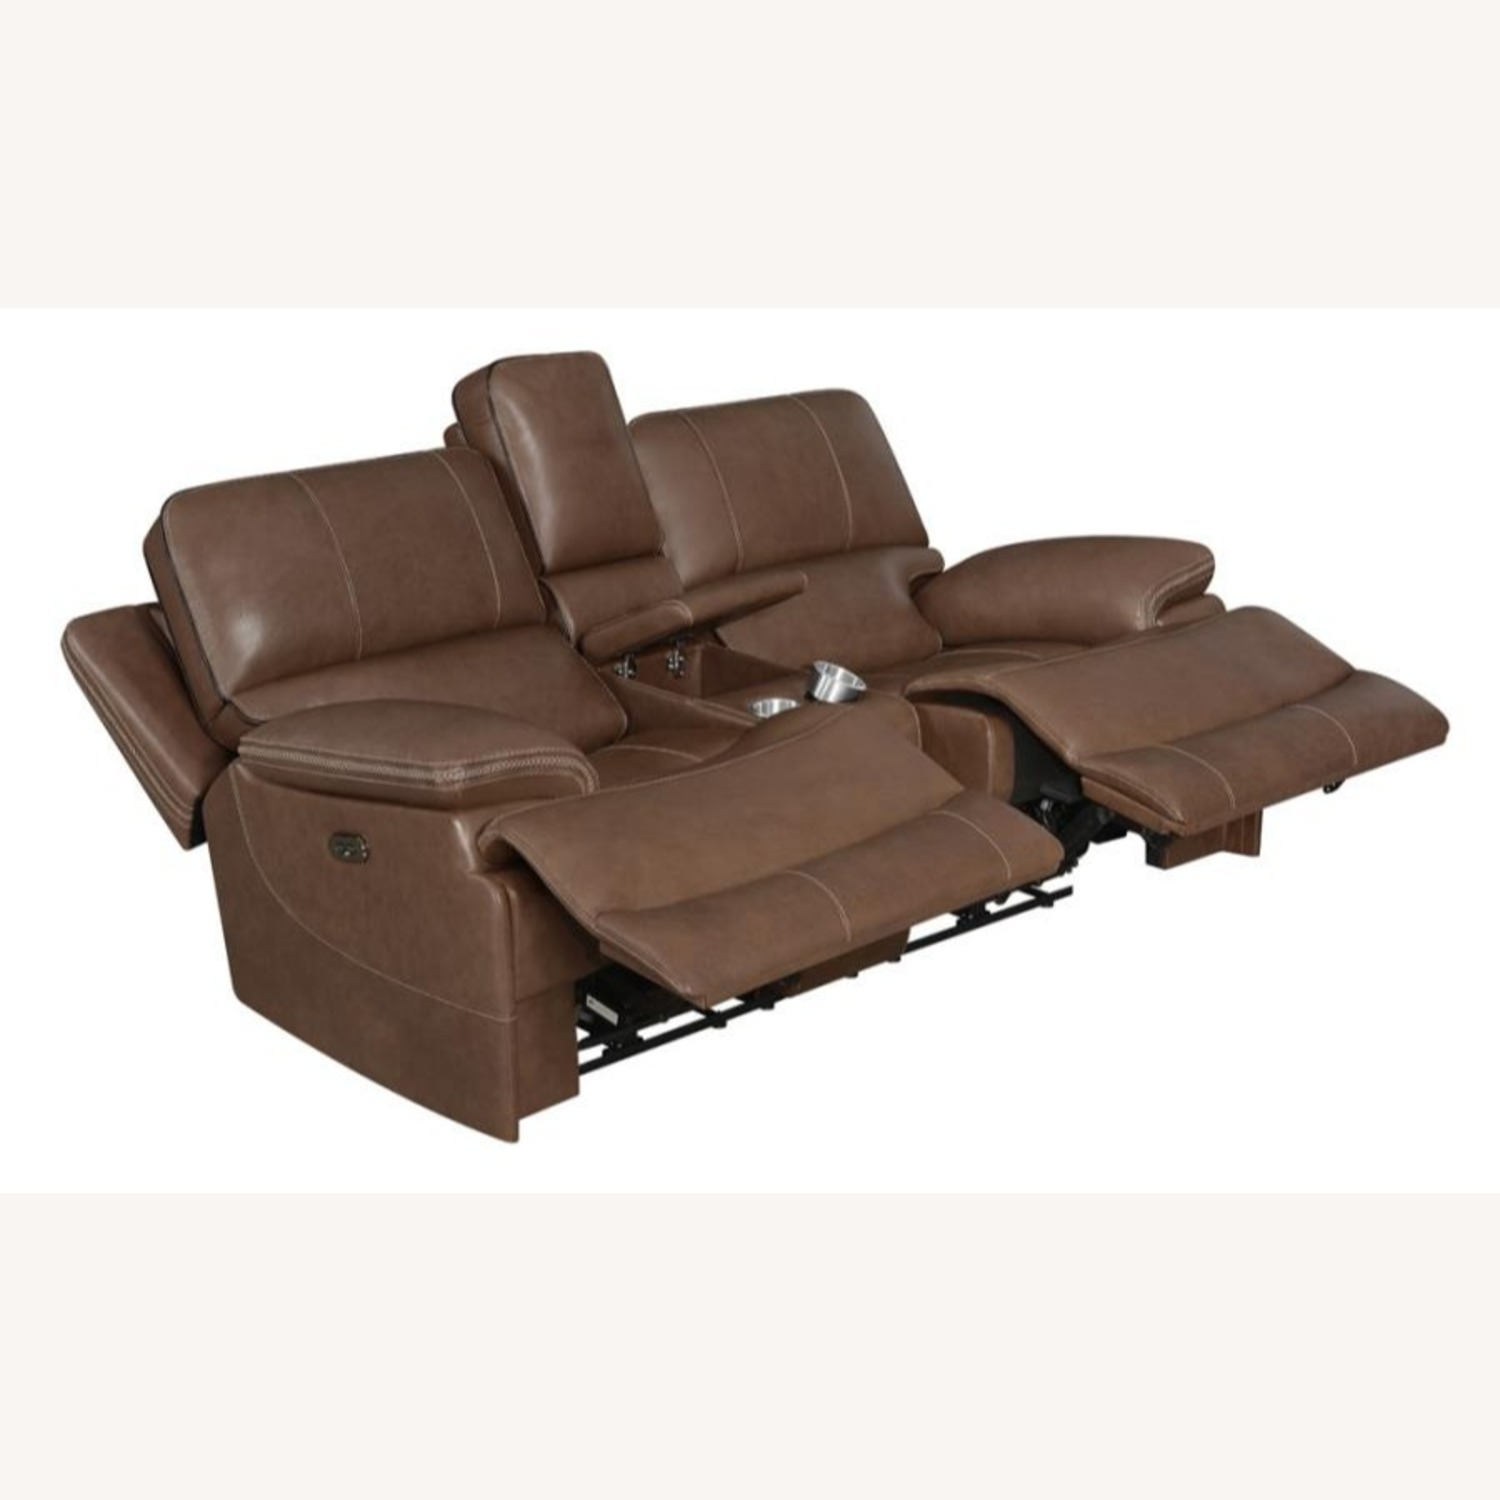 Power Loveseat In Saddle Brown W/ Reclining Seats - image-2